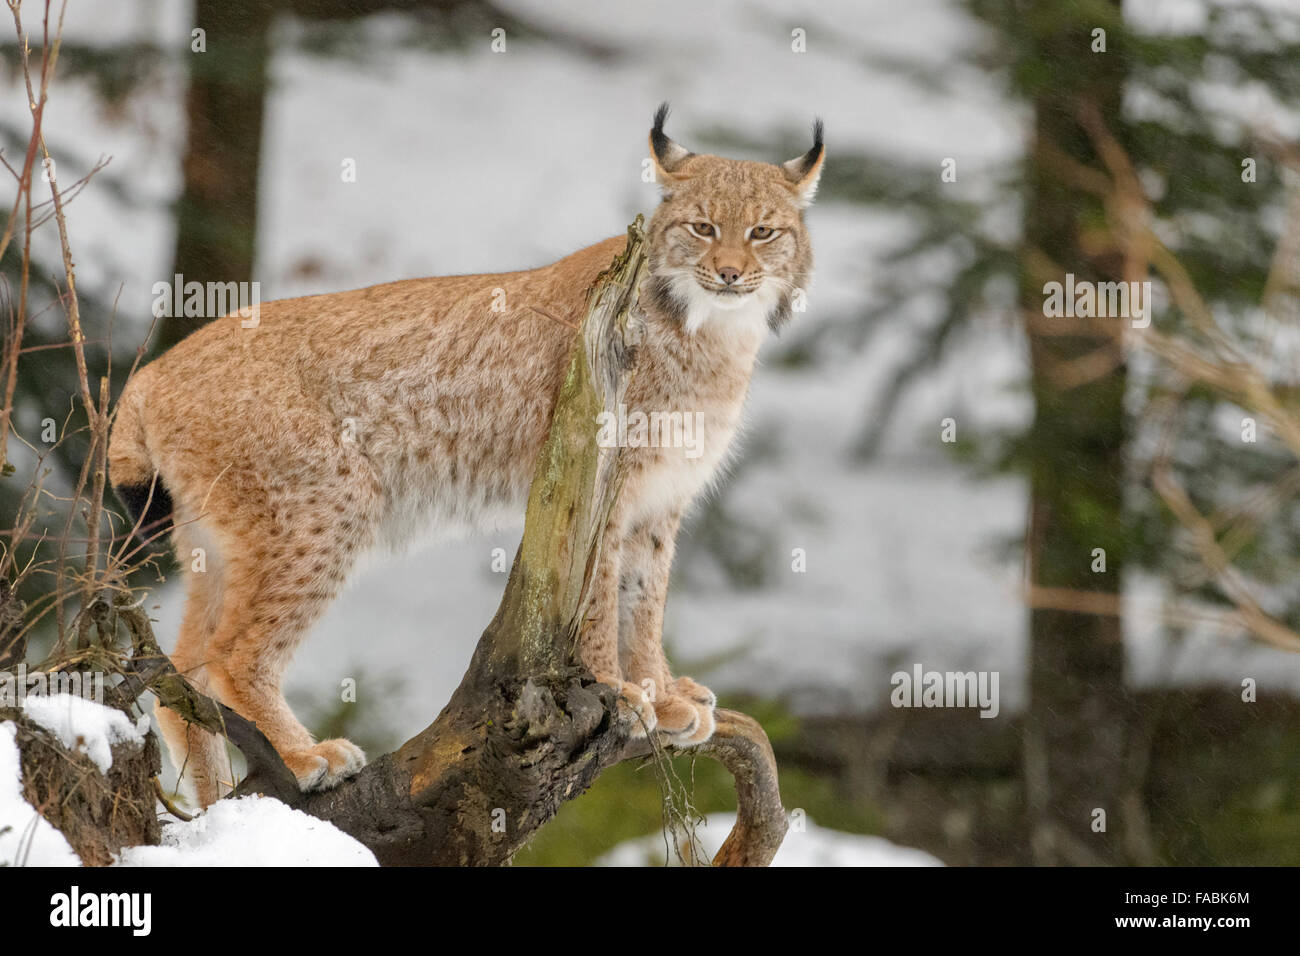 Eurasian Lynx (Lynx lynx) standing on a wood log in snow, looking at camera, Bavarian forest, Germany. - Stock Image